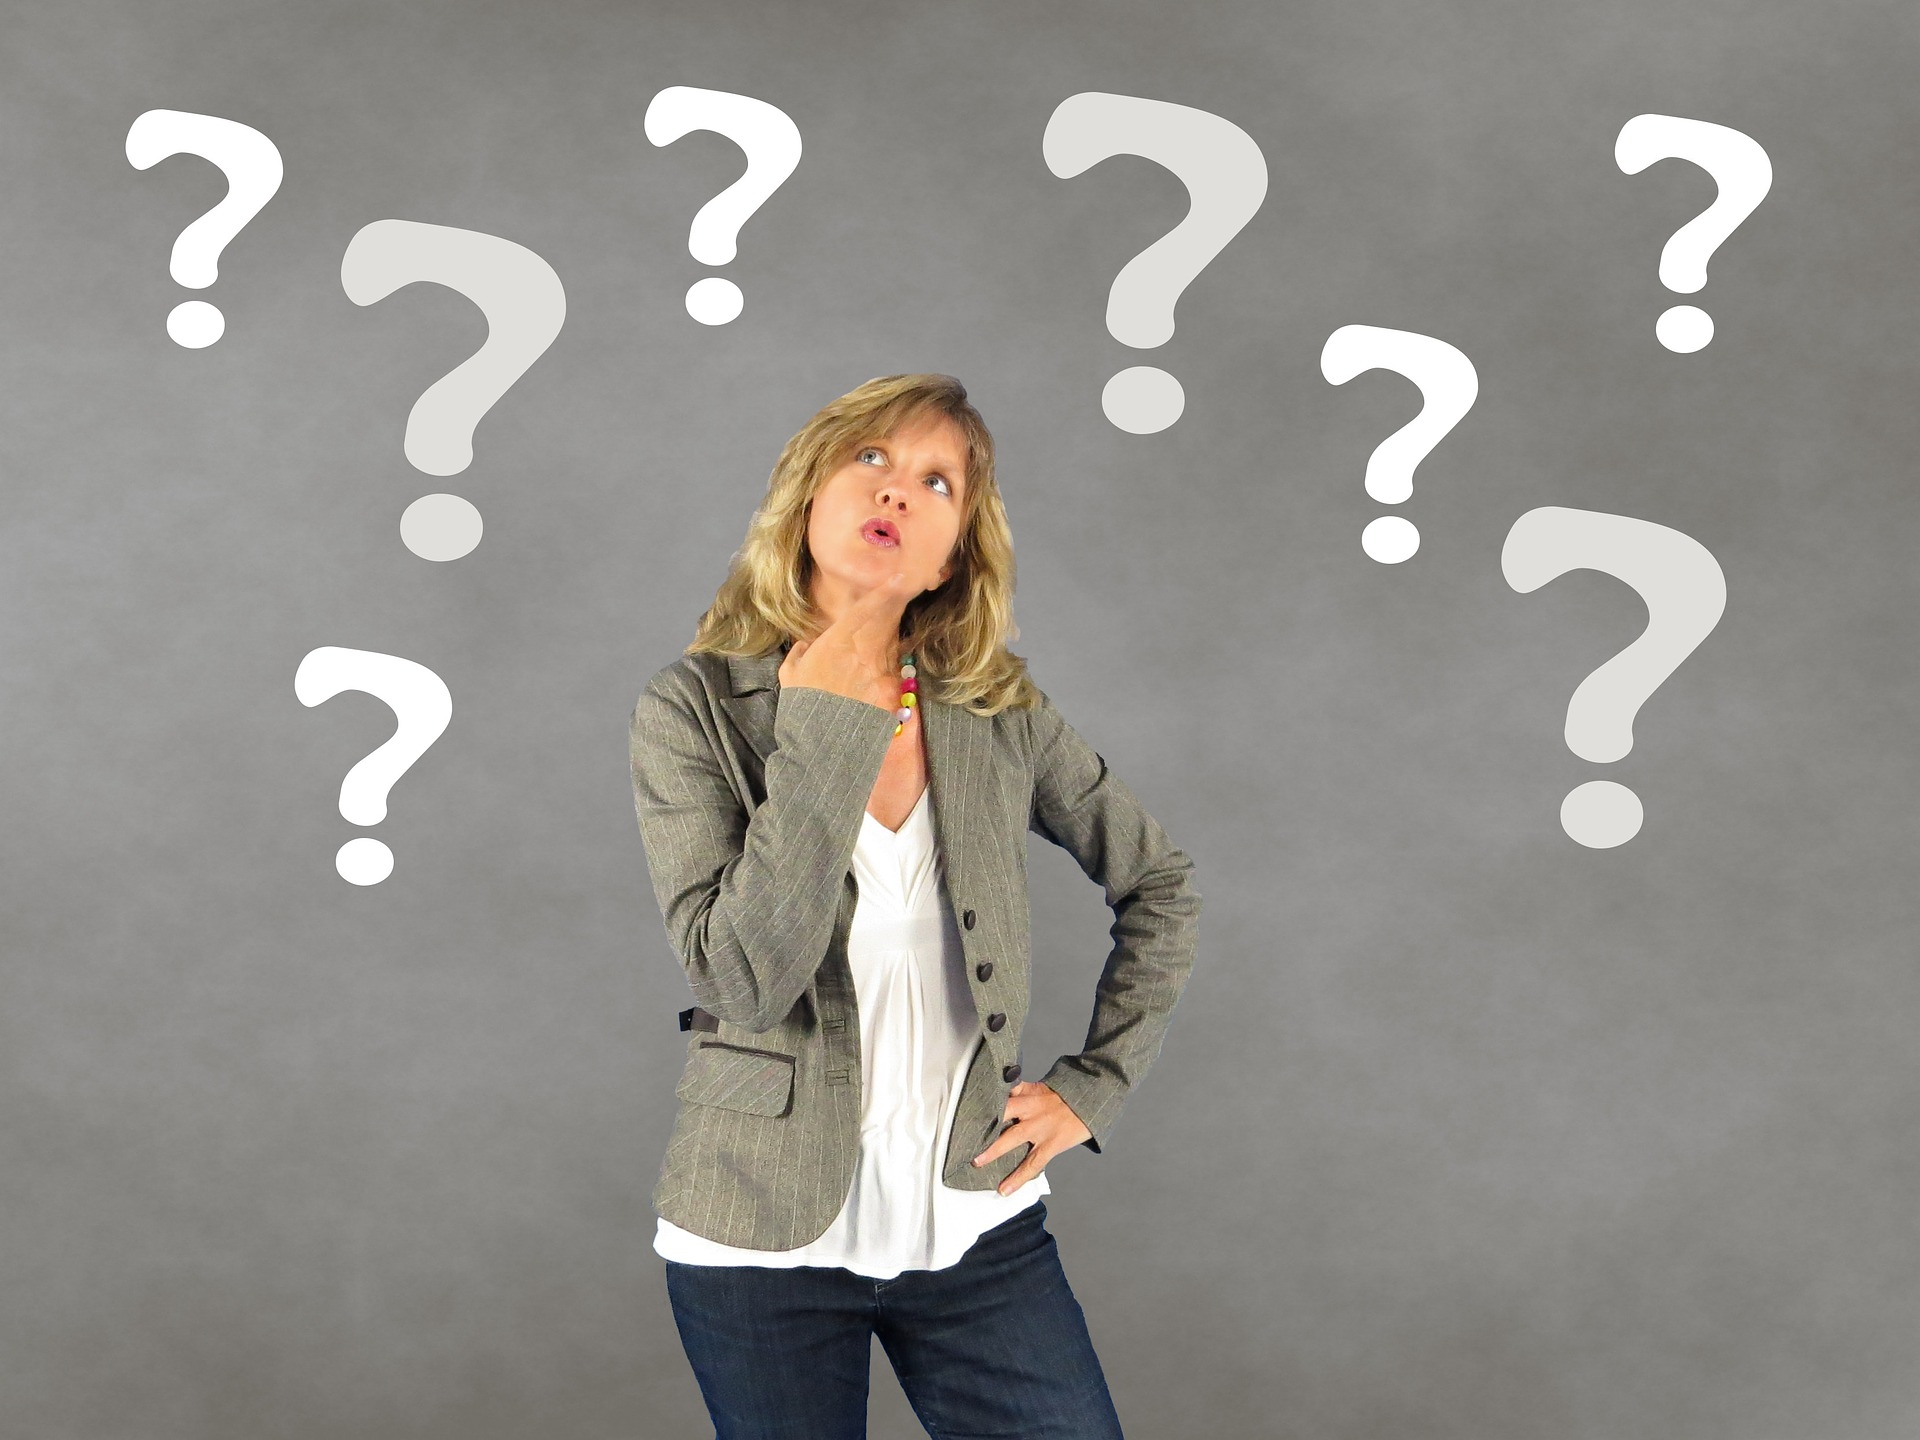 Woman looking upwards wondering about the answer to a question